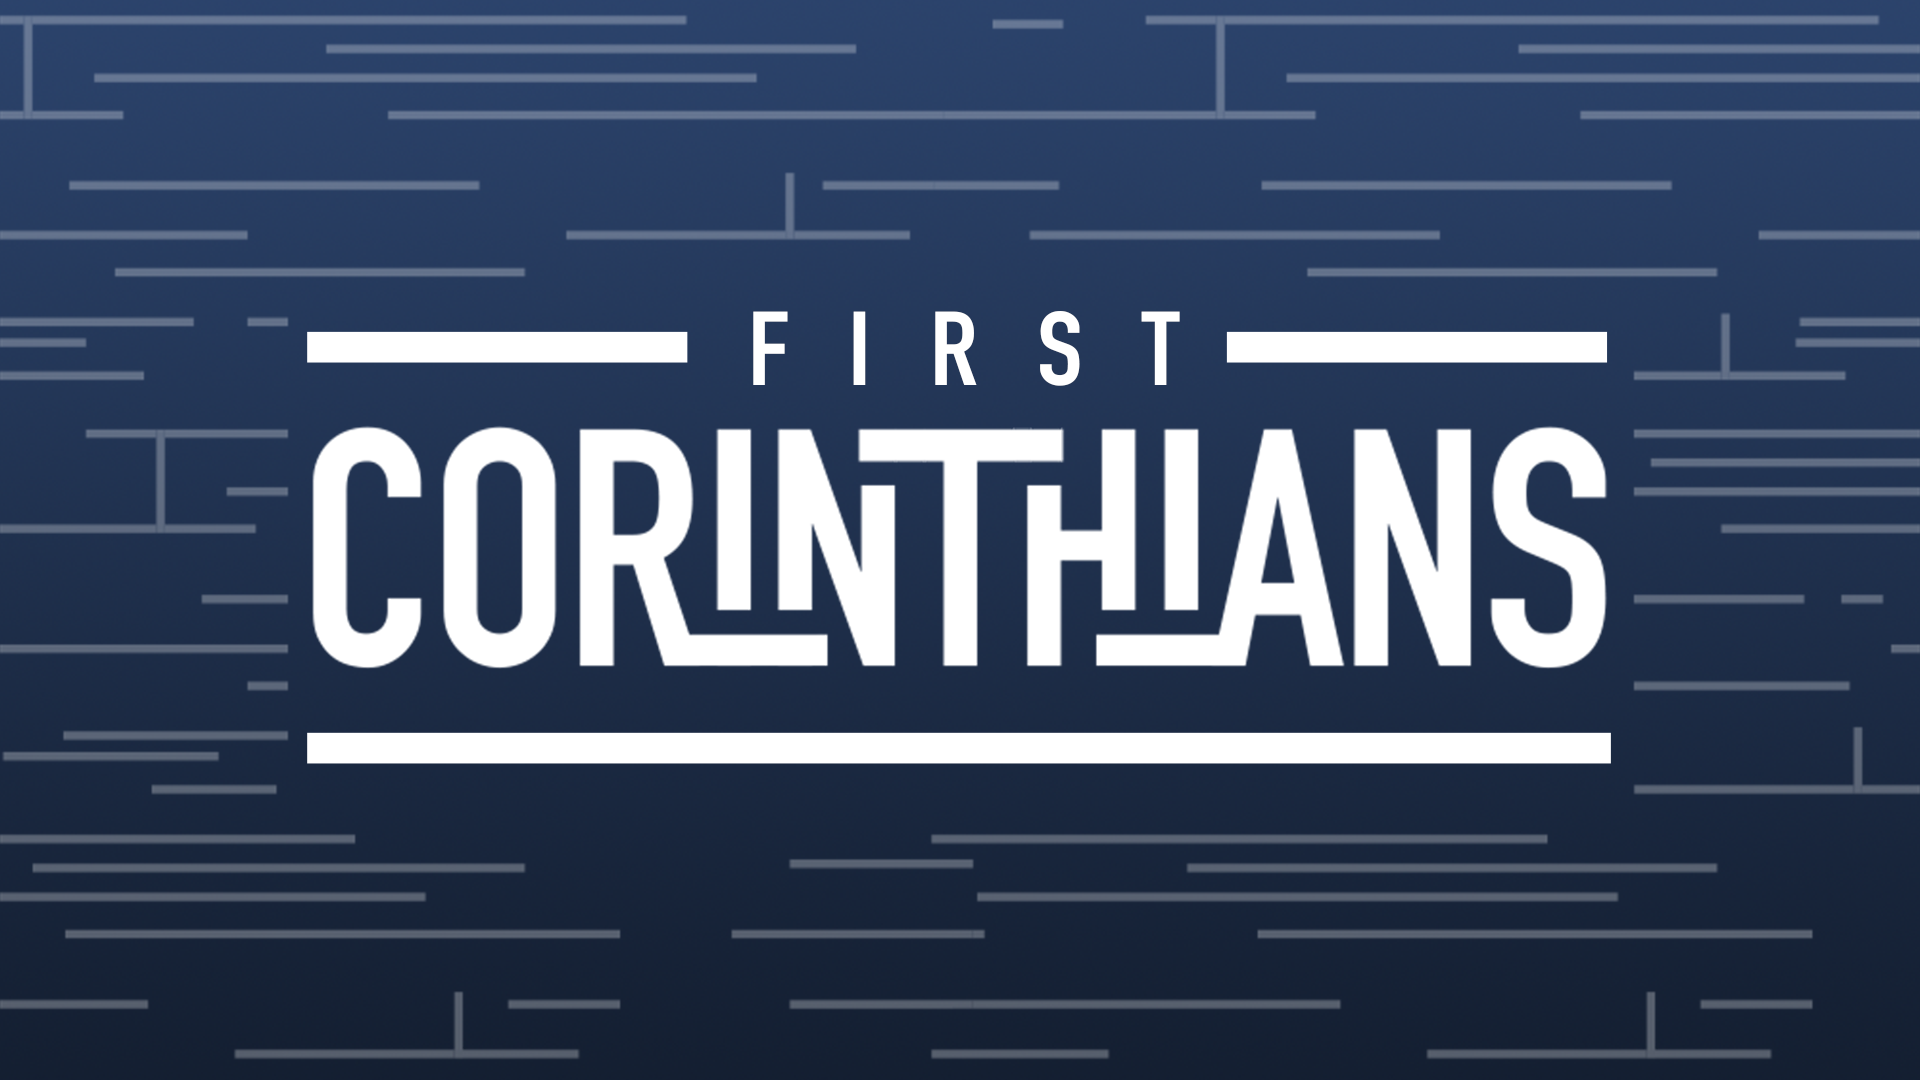 May 23, 2021 | First Corinthians